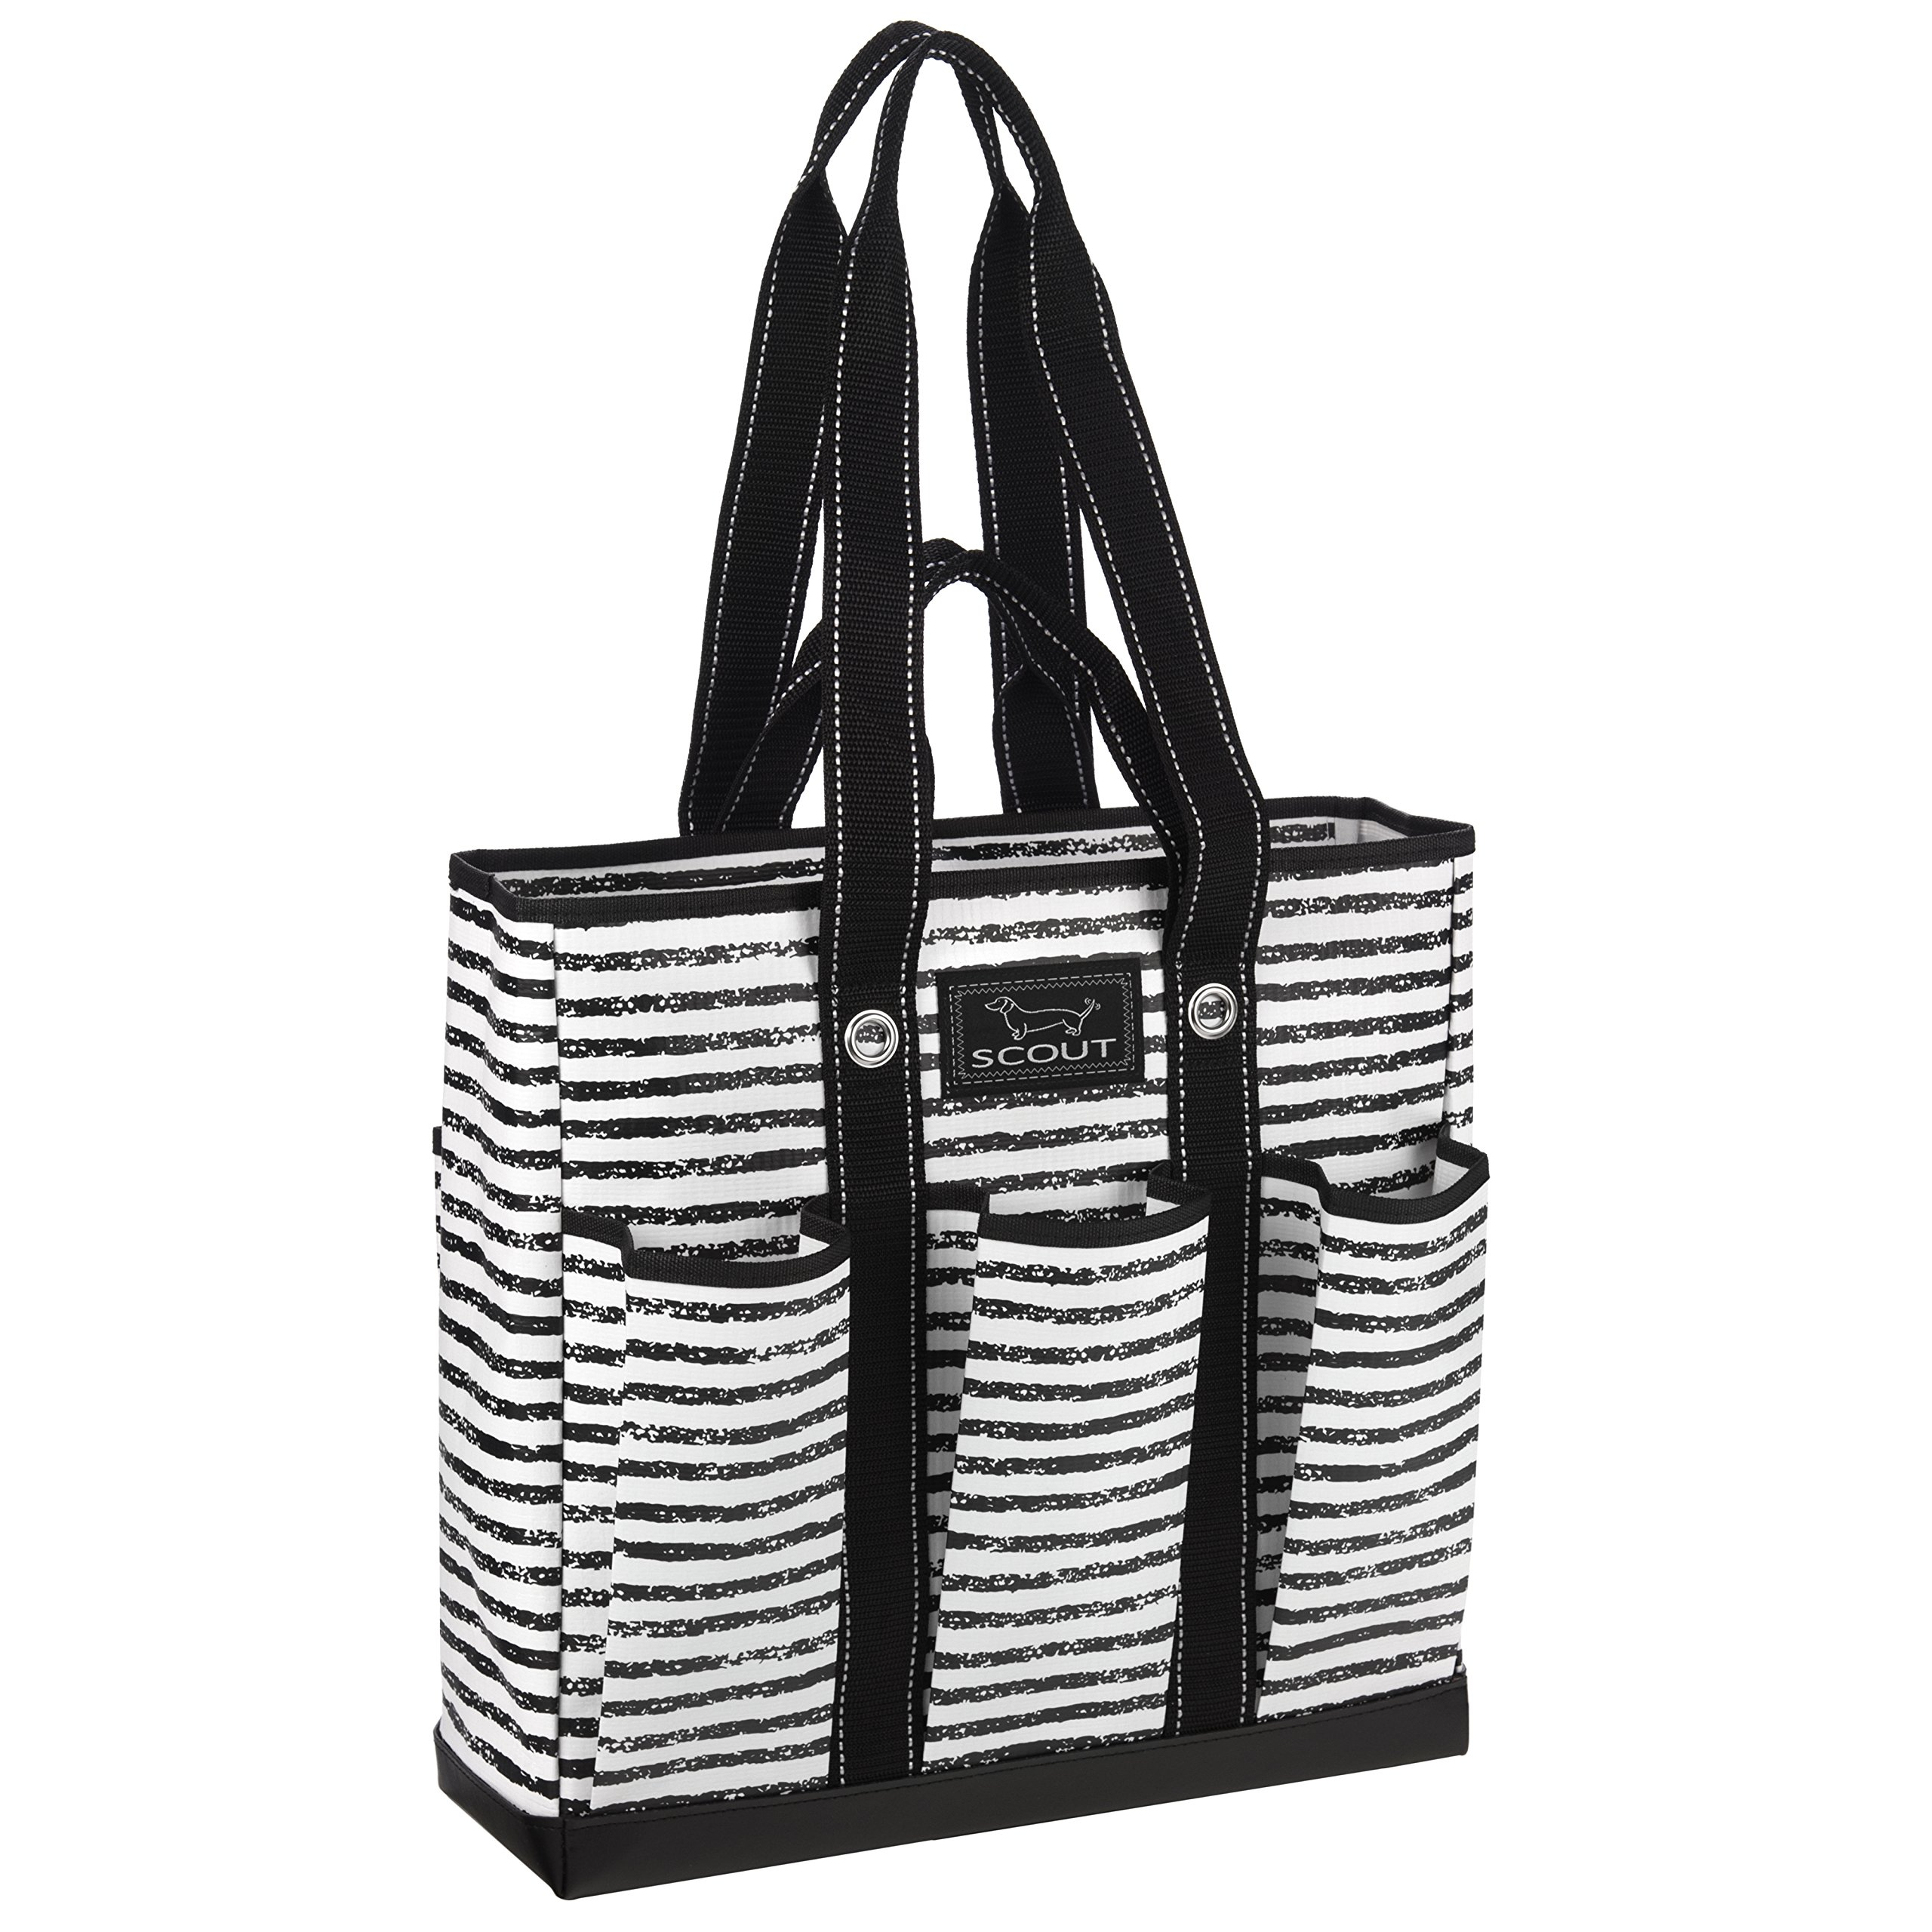 SCOUT Pocket Rocket Multi-Pocket Tote Bag, 6 Exterior Pockets, Interior Zipper Pocket, Two Handle Lengths, Water Resistant, Wipes Clean, Zips Closed, Chalk Back